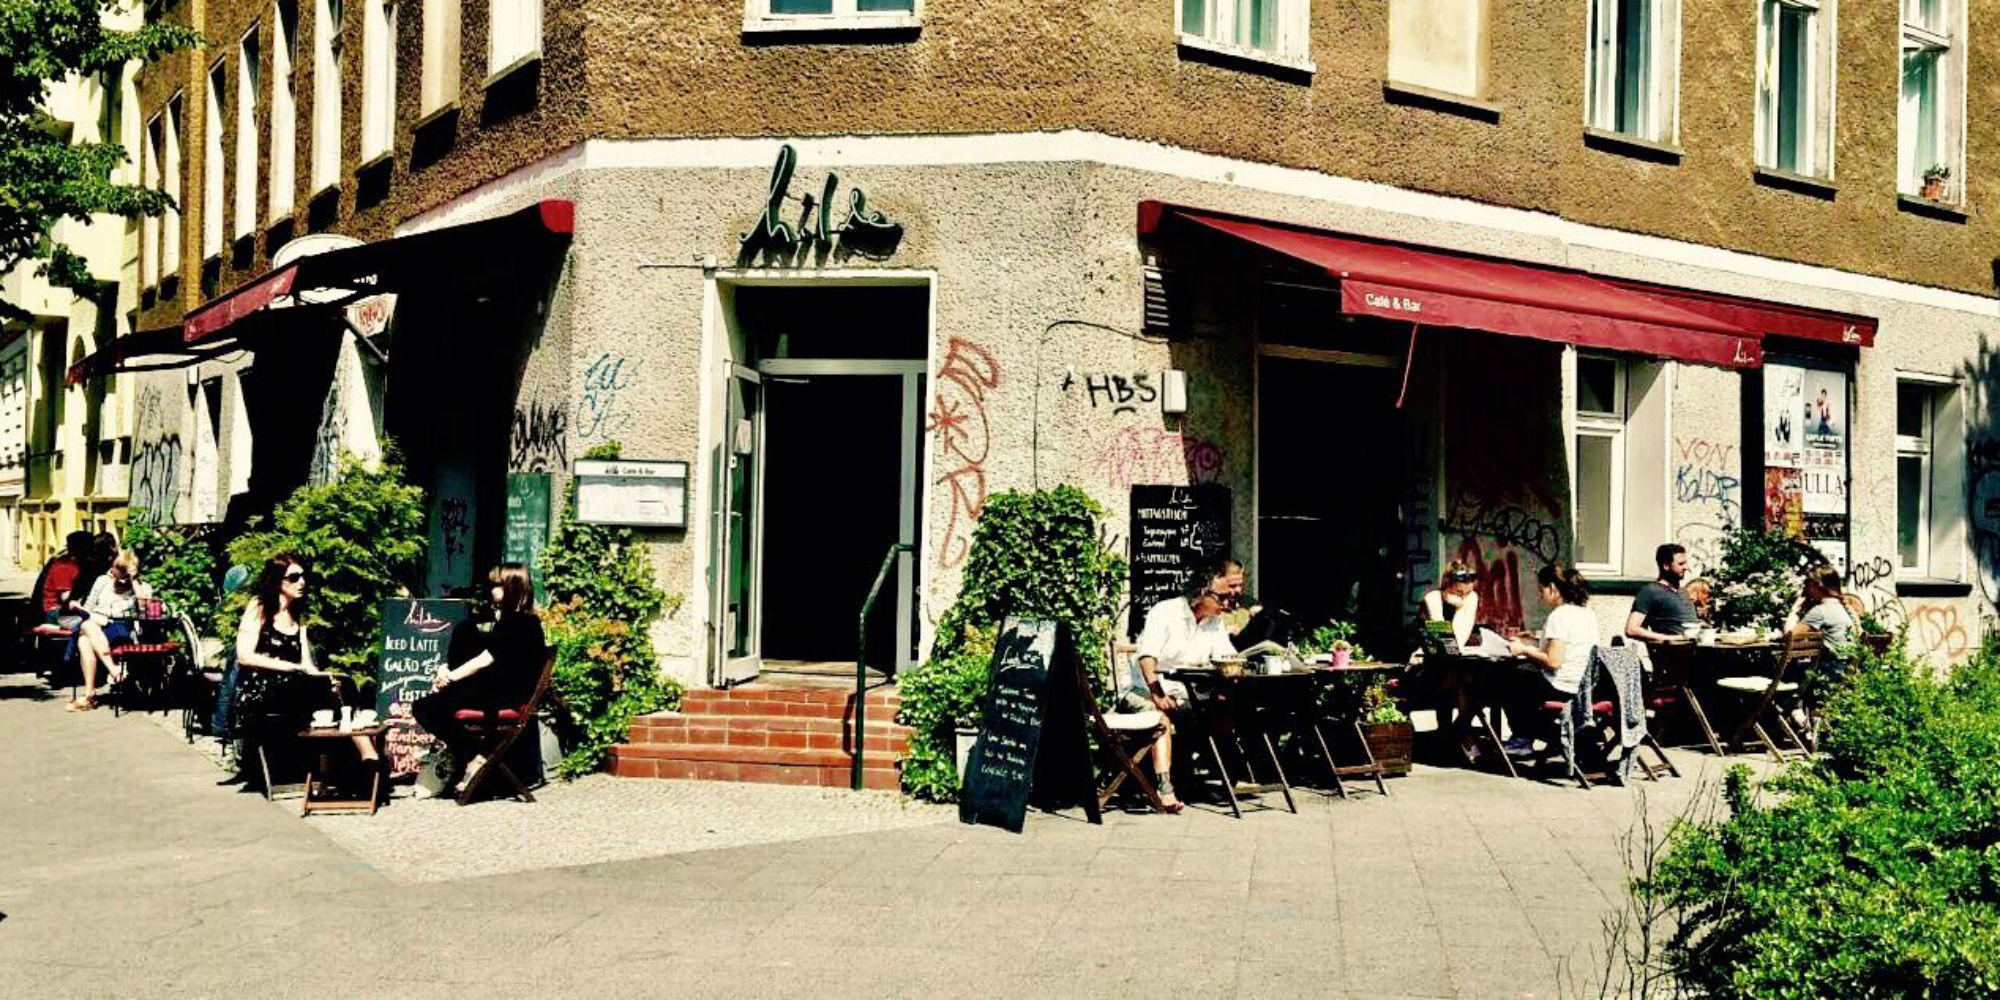 Brunch Café Hilde (10405 Berlin)